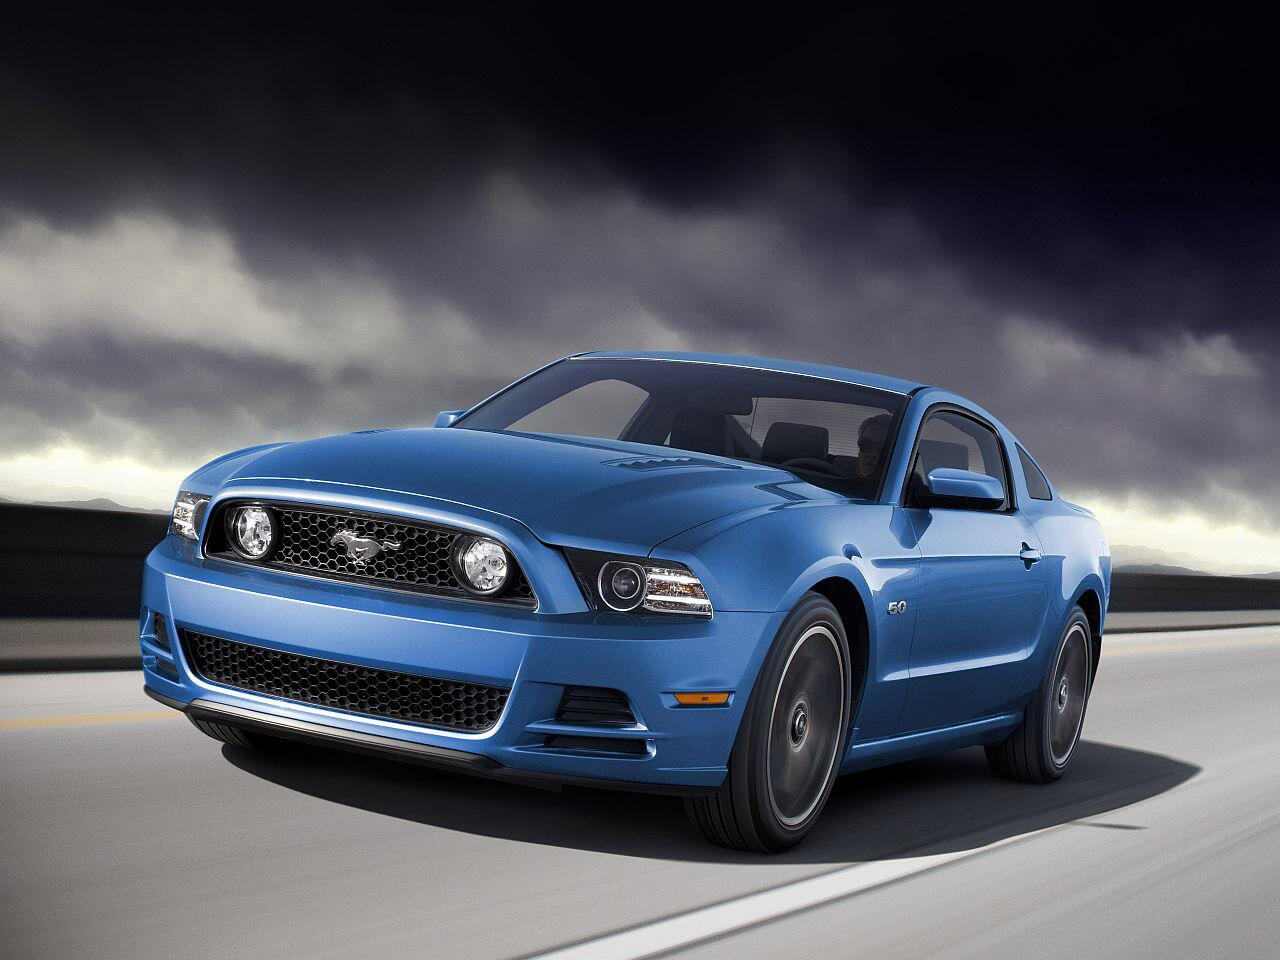 2018 Ford Mustang Milano Concept photo - 4